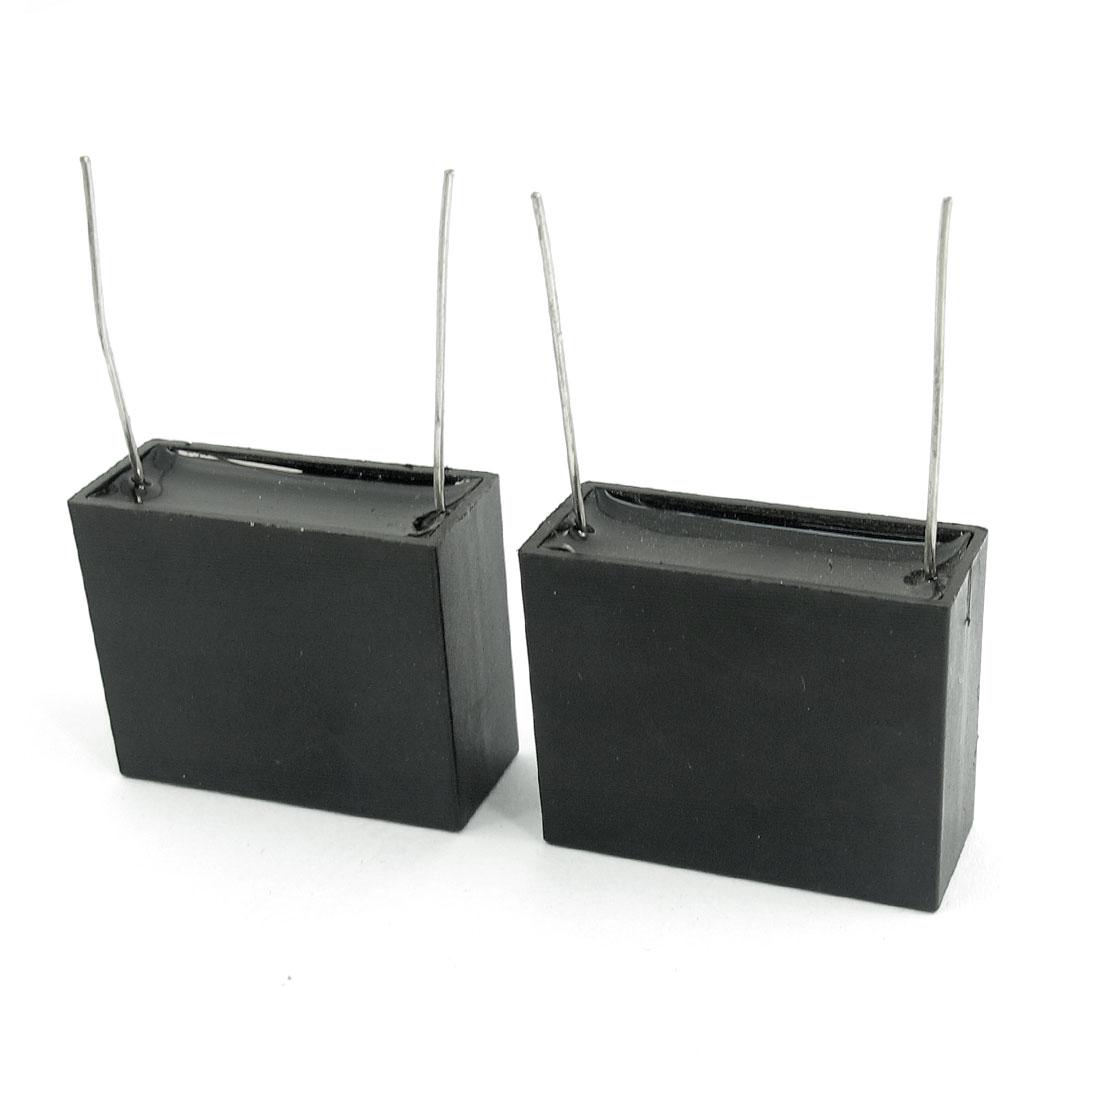 2 PCS AC 350V 2.2uF 50/60Hz Radial Lead Rectangle Film Correction Capacitors Black